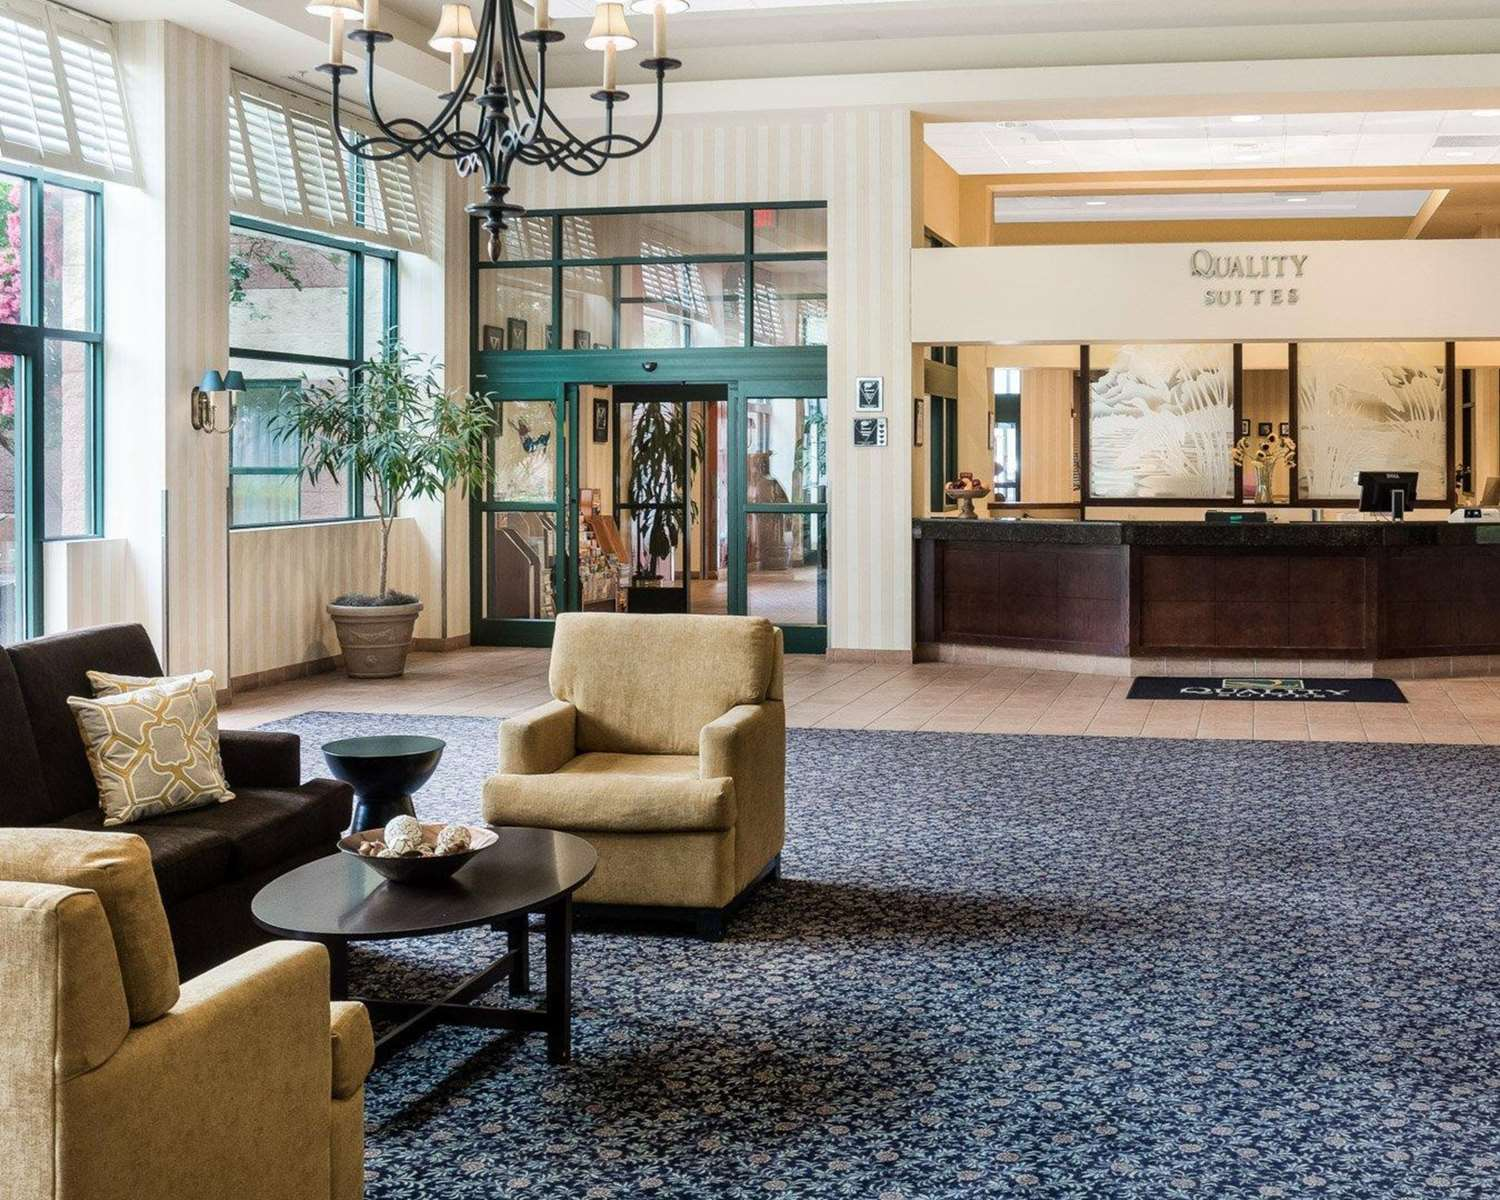 Lobby - Quality Suites Lake Wright Norfolk